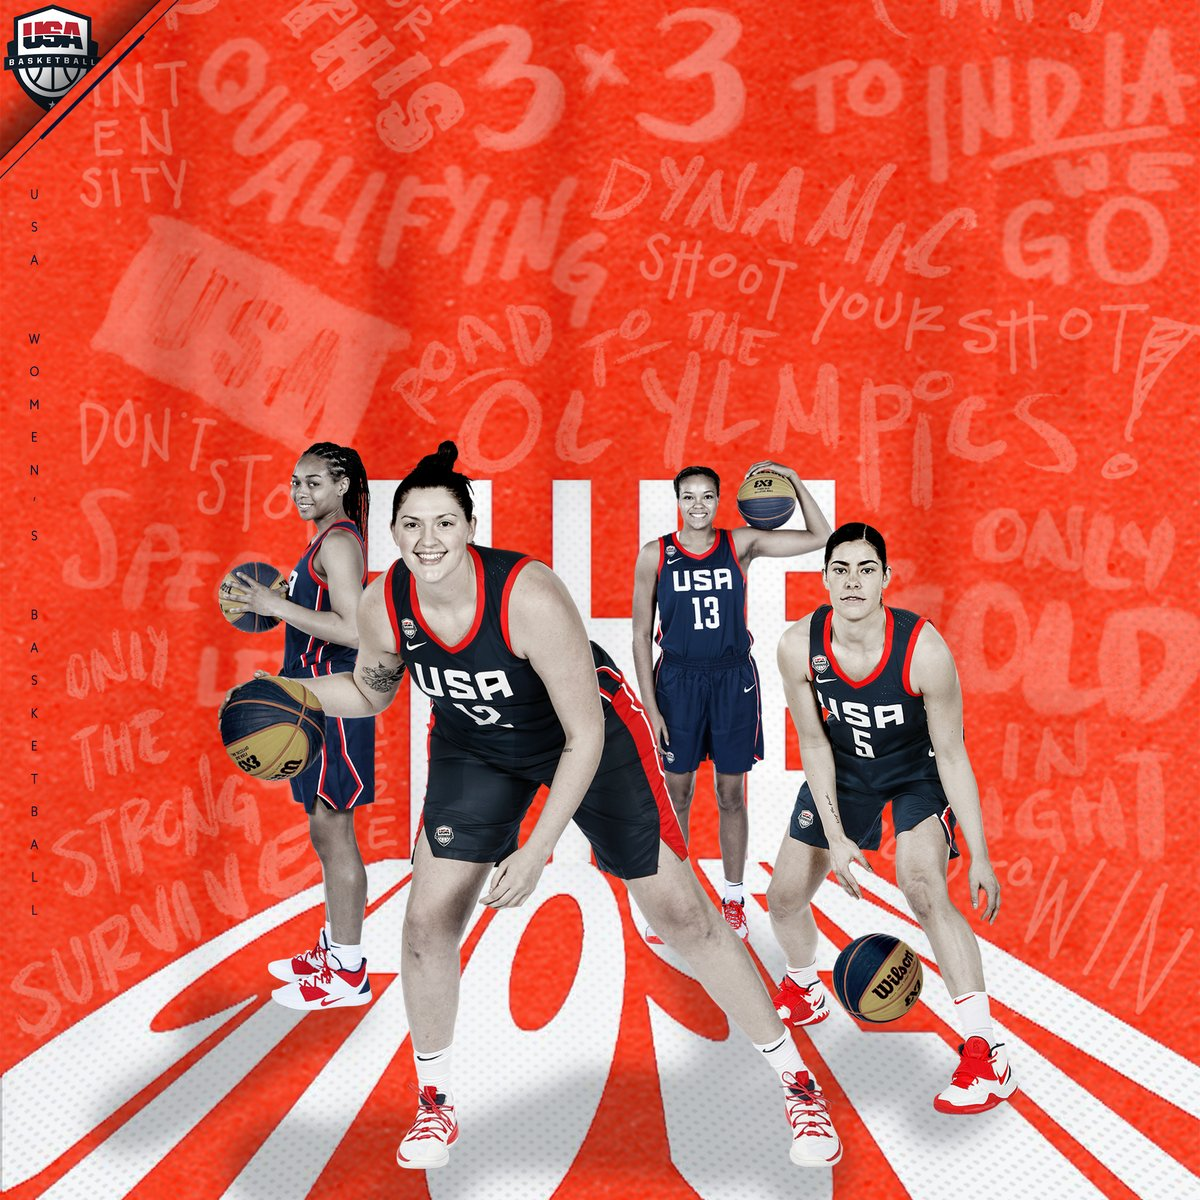 Star-Studded Squad 🇺🇸✨  We're taking an all-@WNBA roster of @PHEEsespieces, @bigmamastef, @Graytness_15 & @Kelseyplum10 to the 2020 @FIBA3x3 Olympic Qualifying Tournament!  »» http://bit.ly/2020USA3x3OQTTeams …